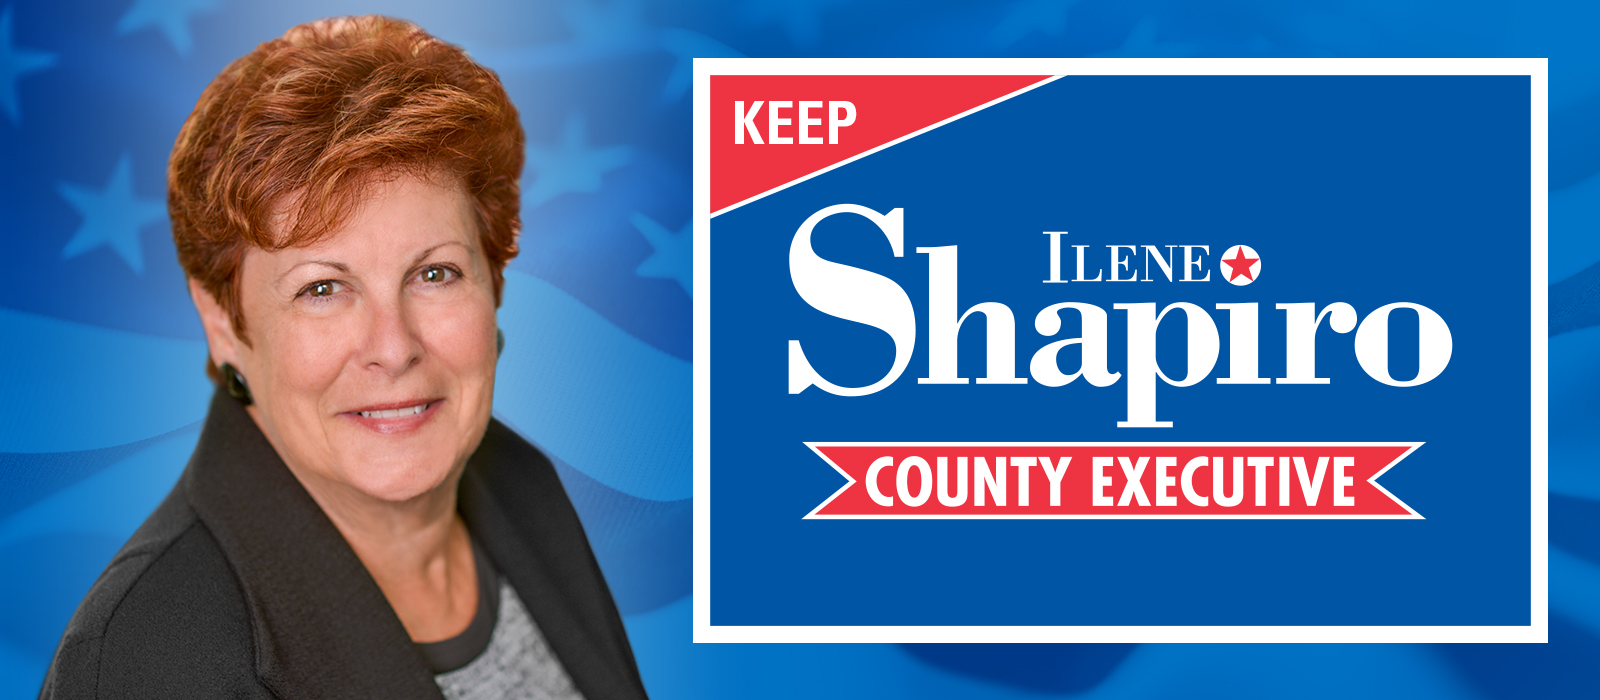 Keep Ilene Shapiro